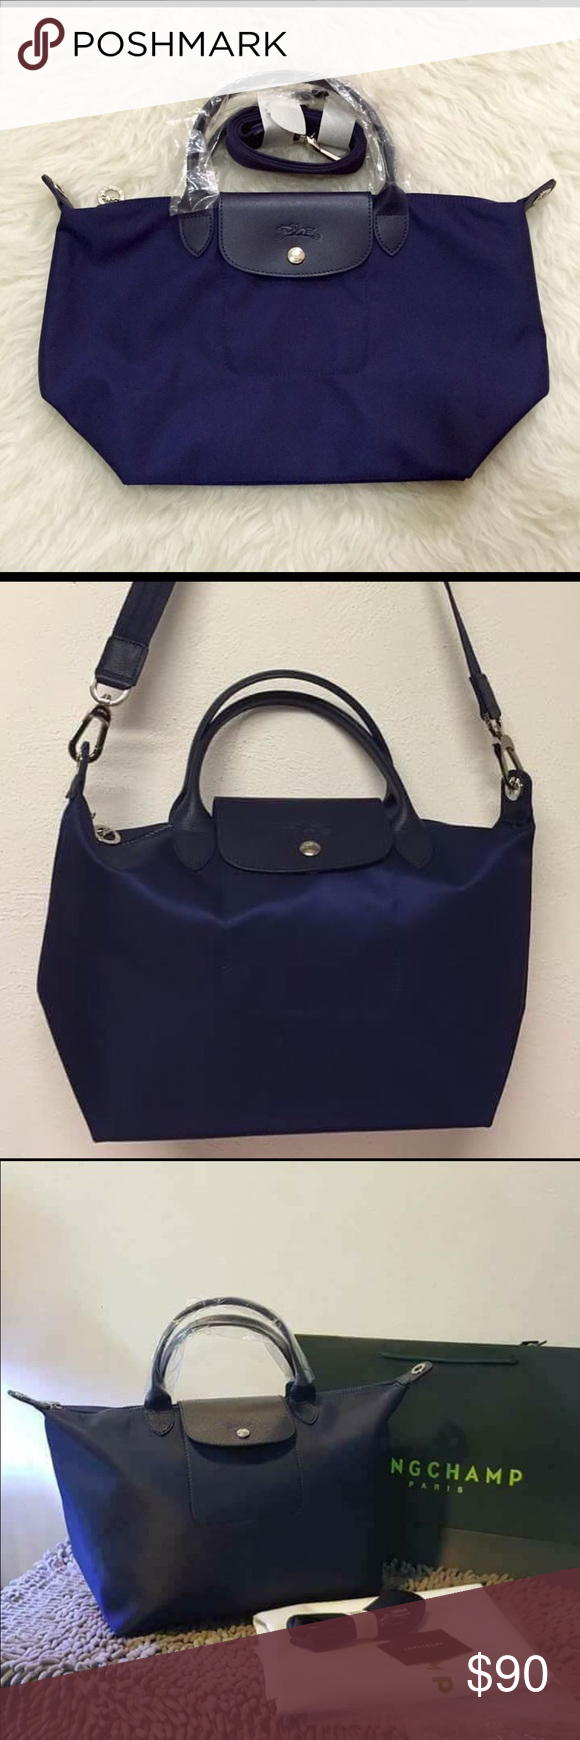 NAVY LONGCHAMP NEO LE PLIAGE Medium or small, brand new, authentic.  Longchamp Bags